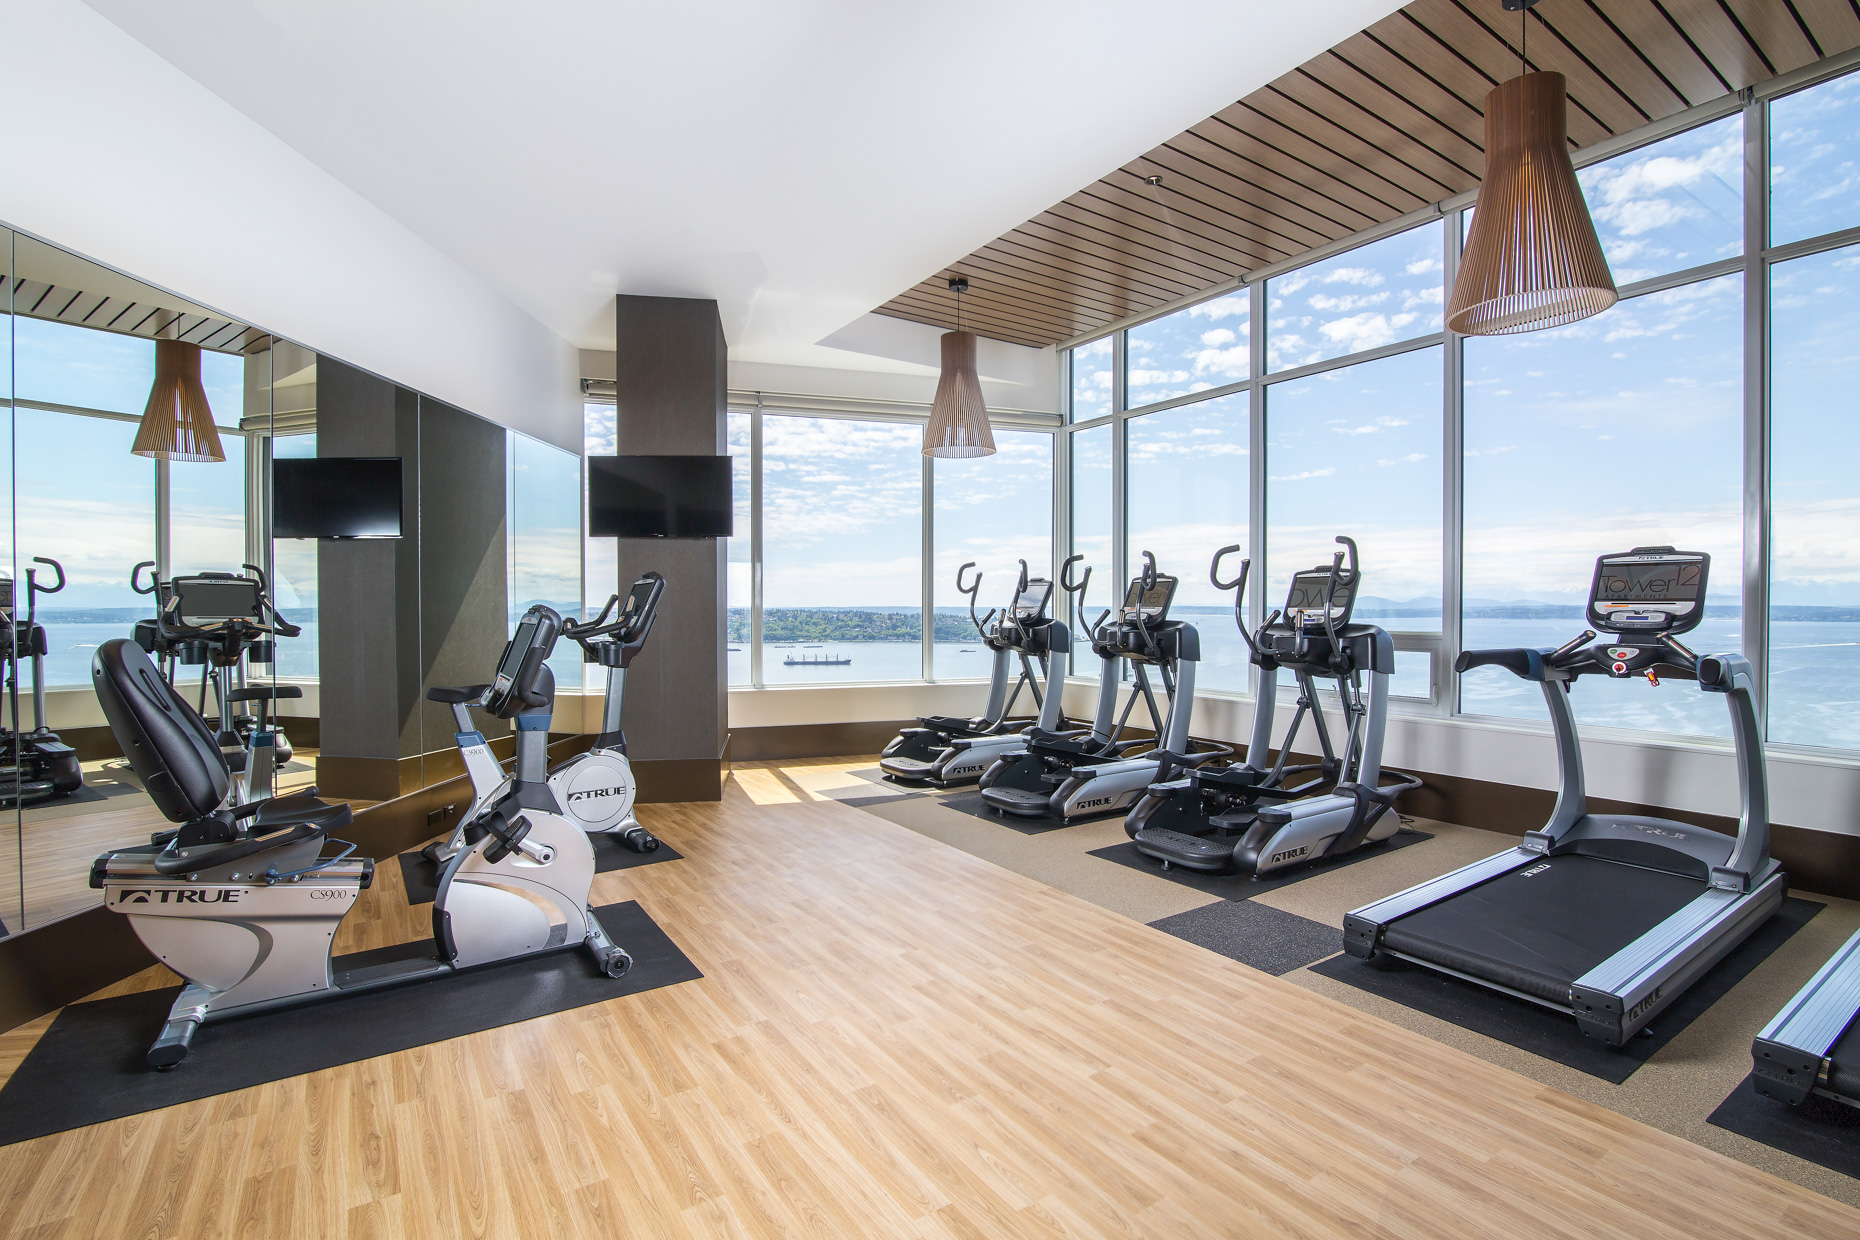 Private gym with water views and hardwood floors